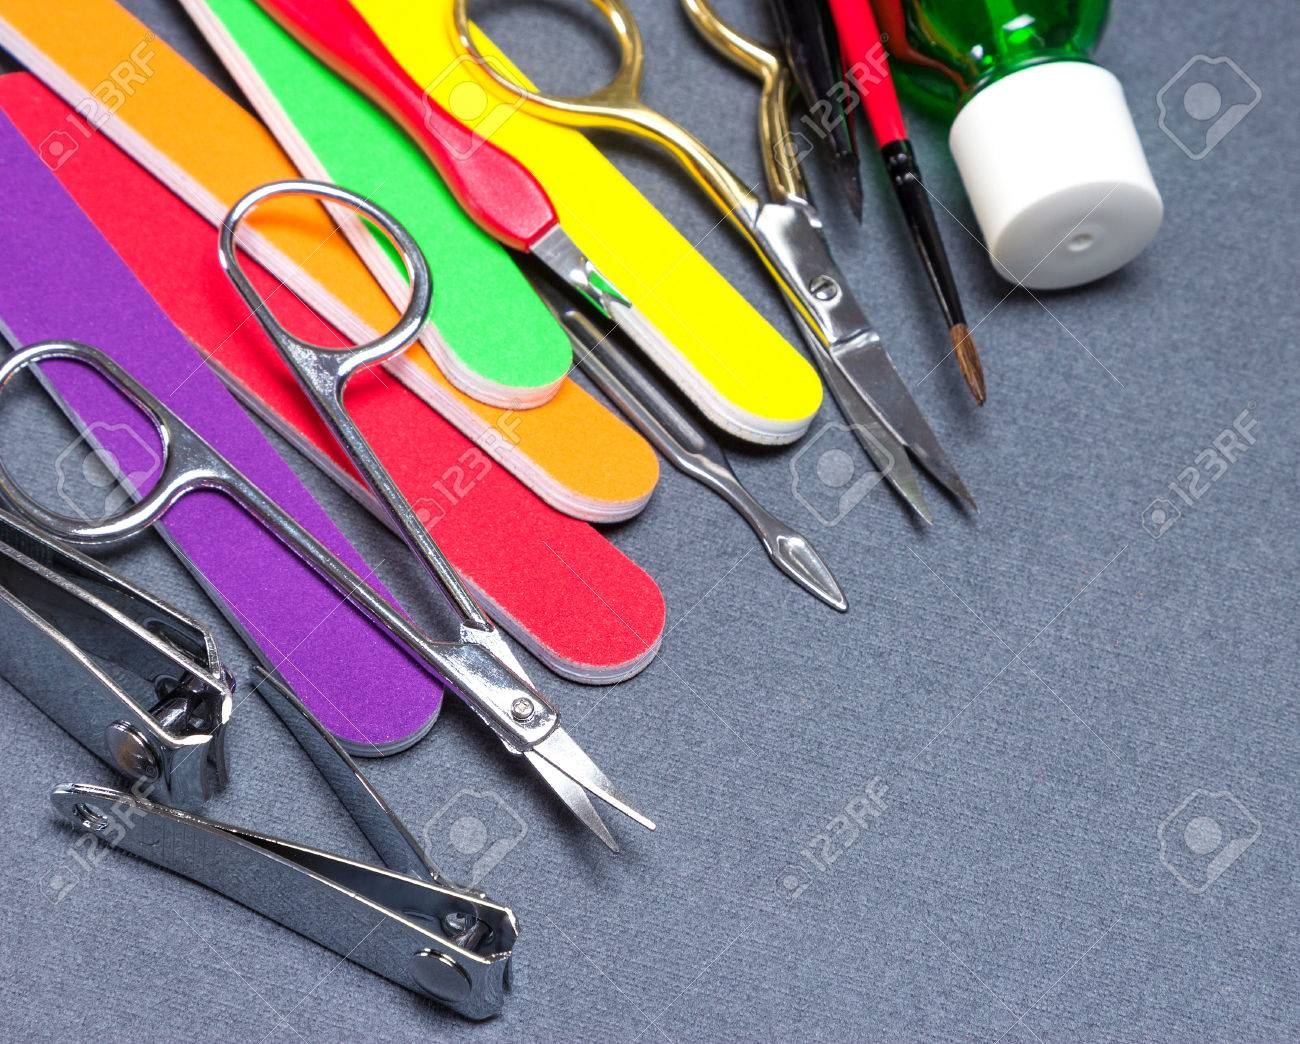 Various Manicure Tools On Gray Textured Surface. Nail Clippers ...